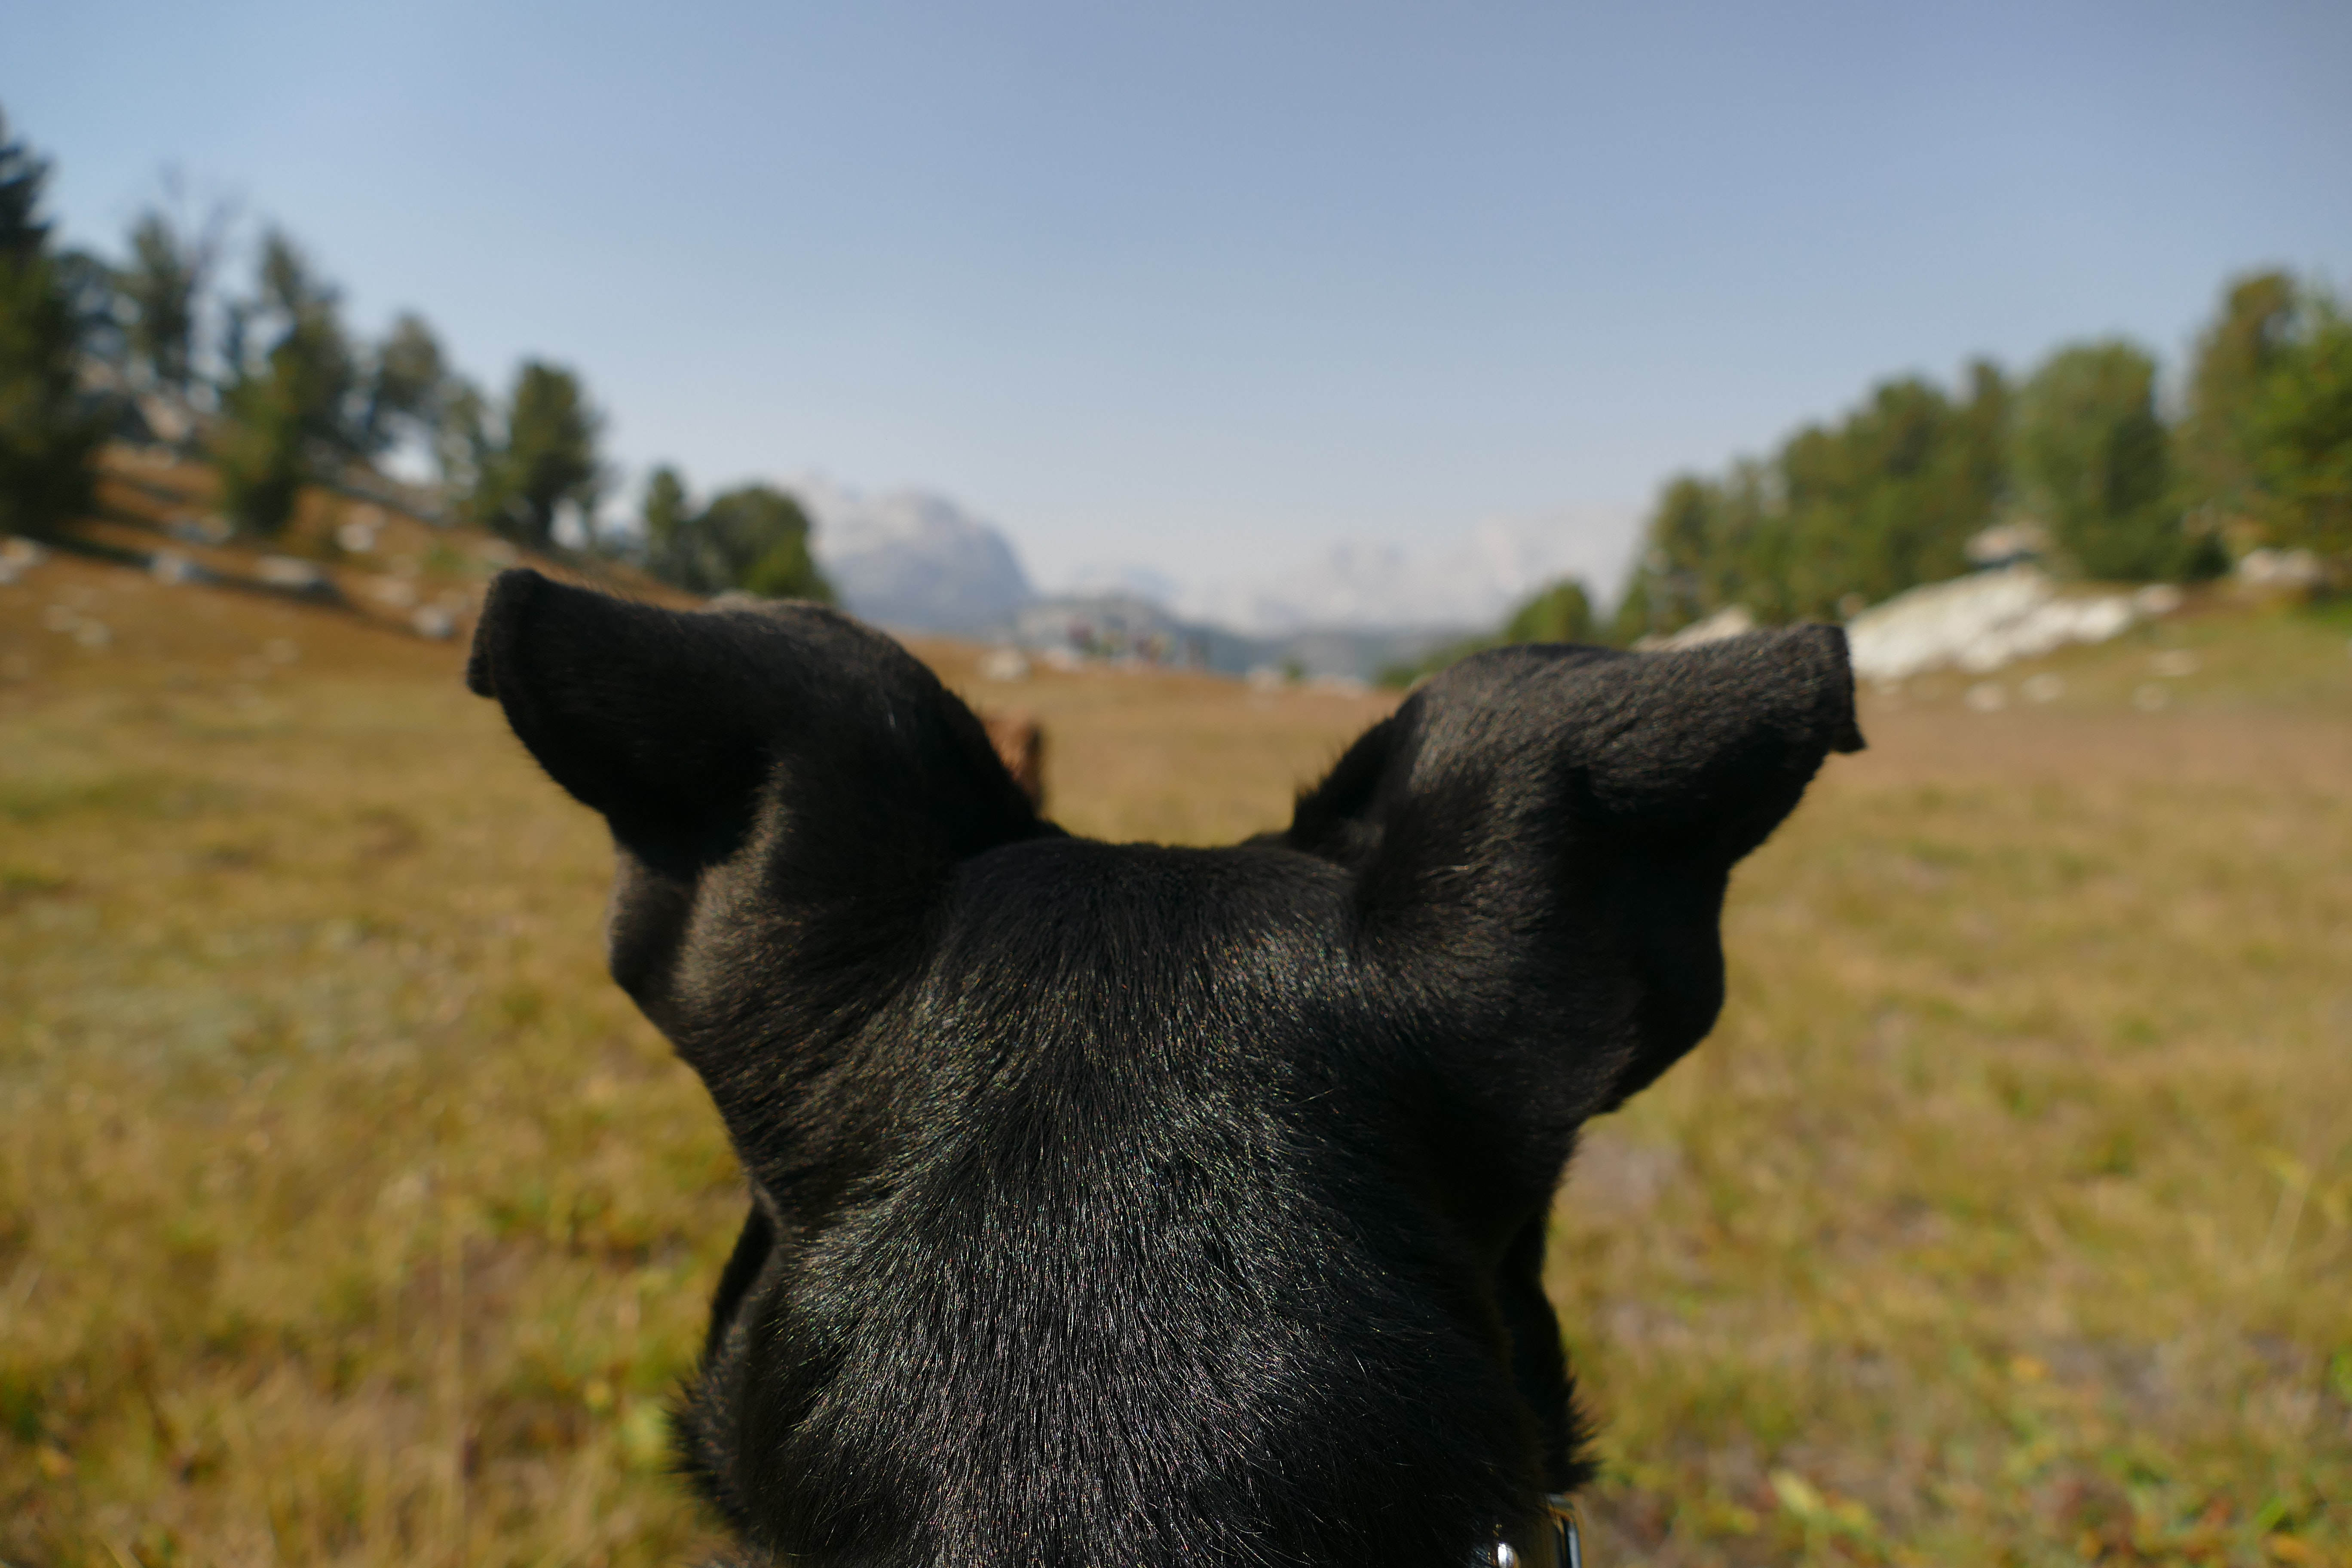 dog's perspective